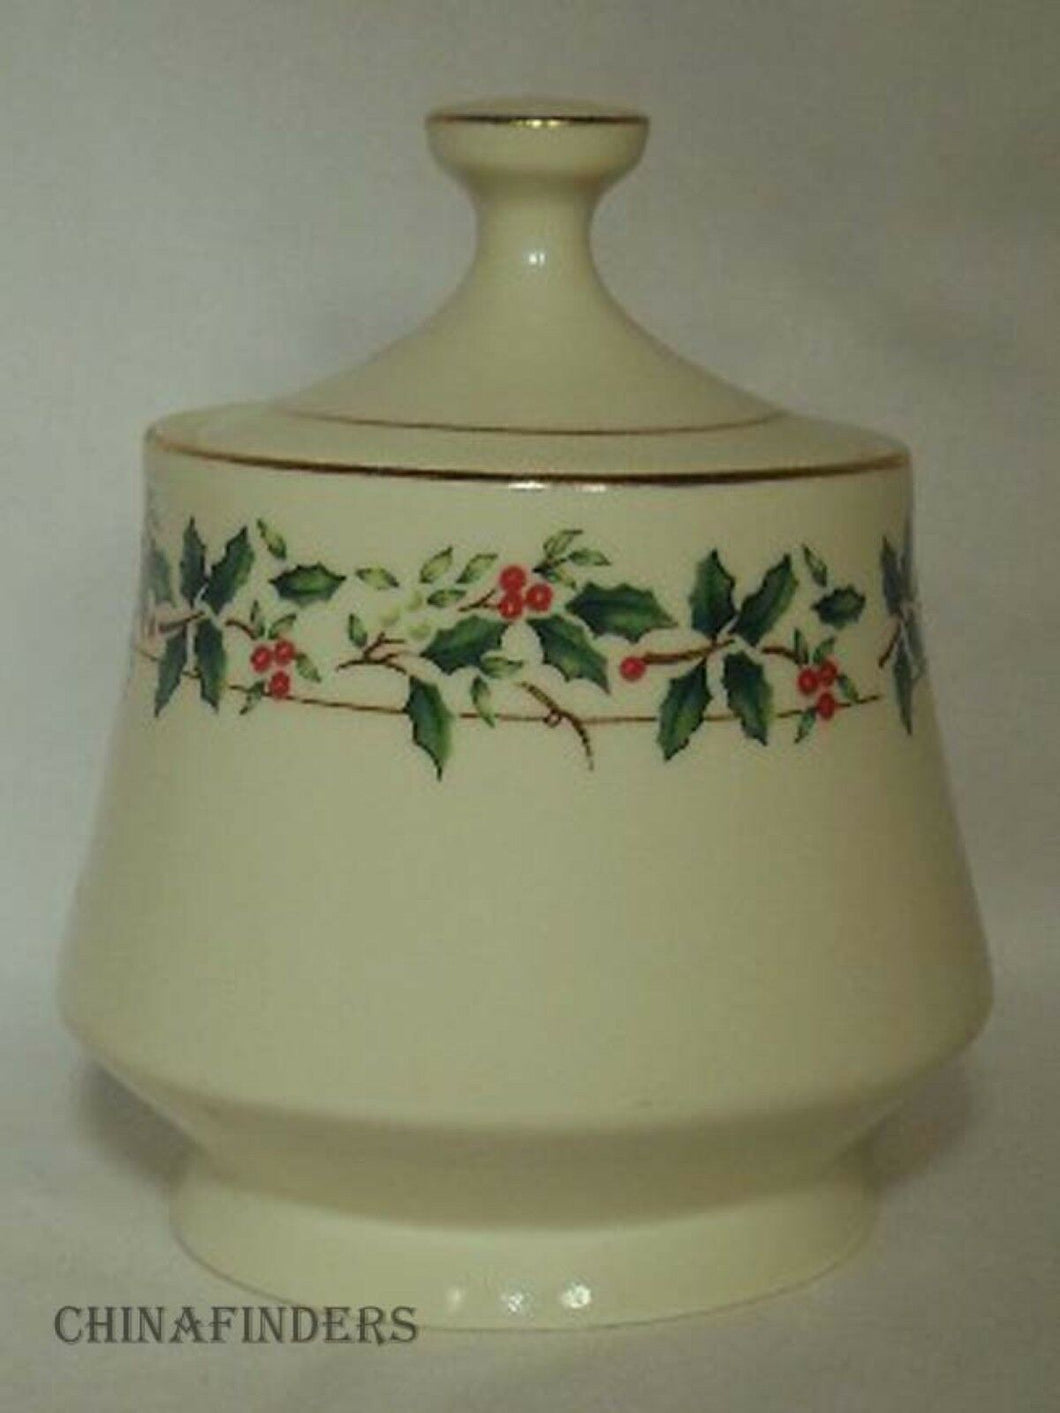 MADE in CHINA china HOLIDAY TRADITIONS pattern SUGAR BOWL with LID